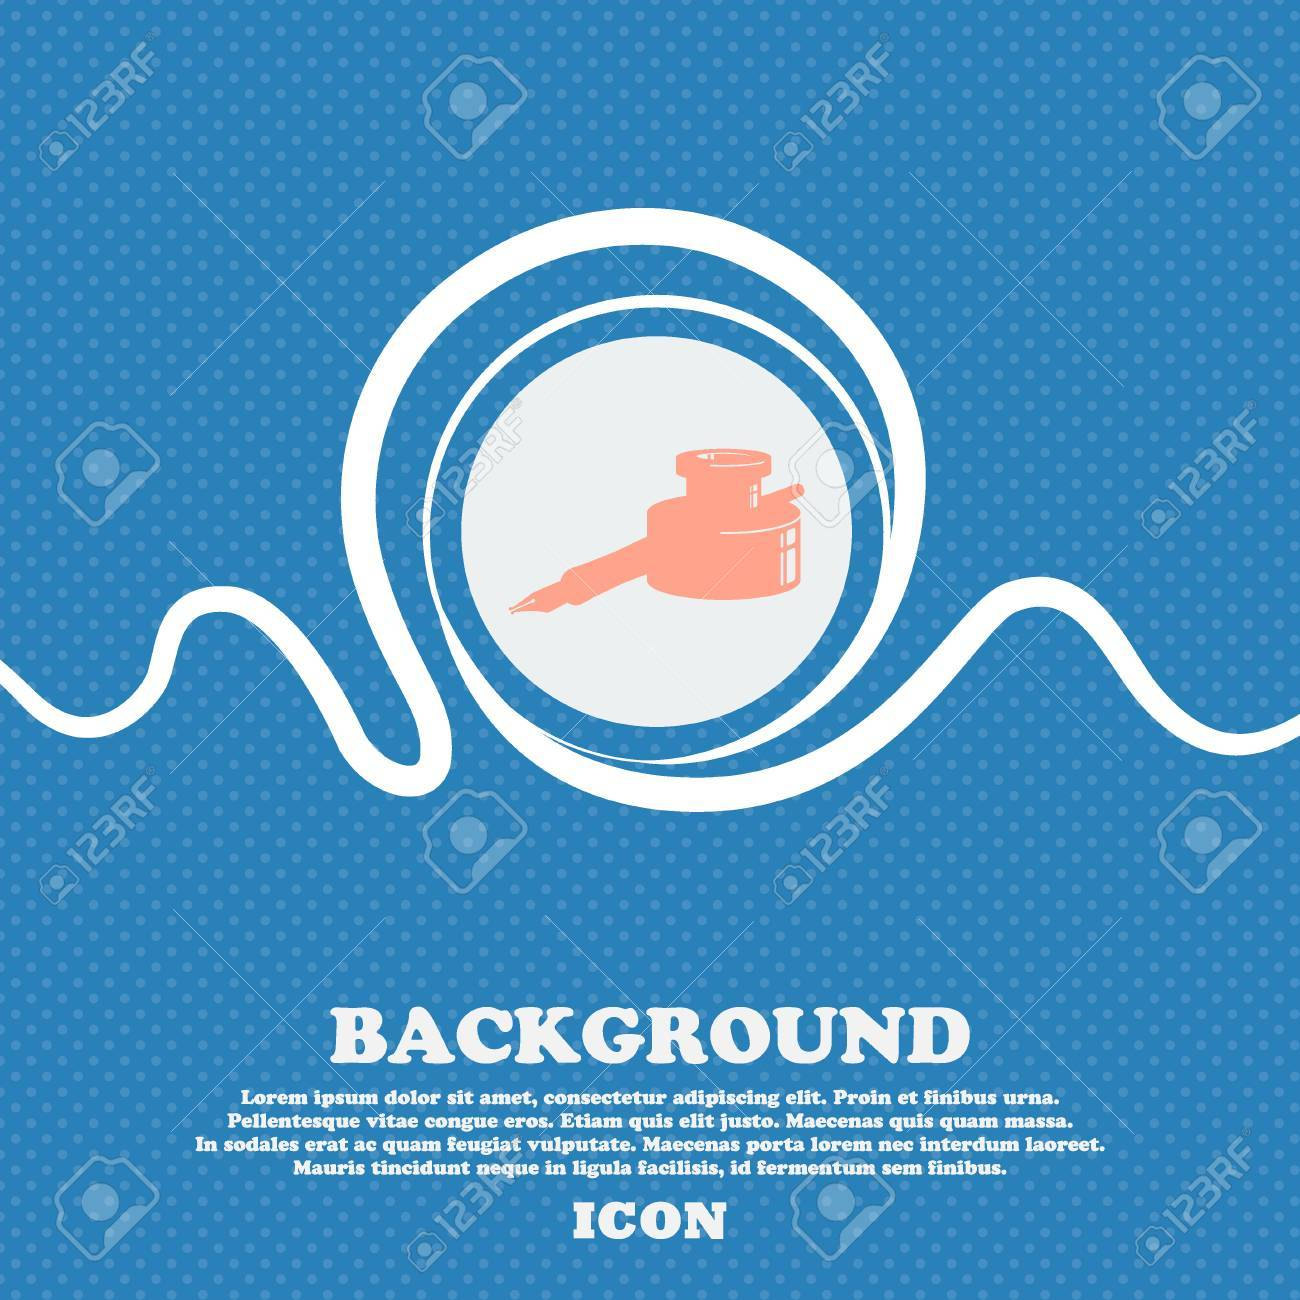 Pen and ink sign icon blue and white abstract background flecked pen and ink sign icon blue and white abstract background flecked with space for text biocorpaavc Choice Image